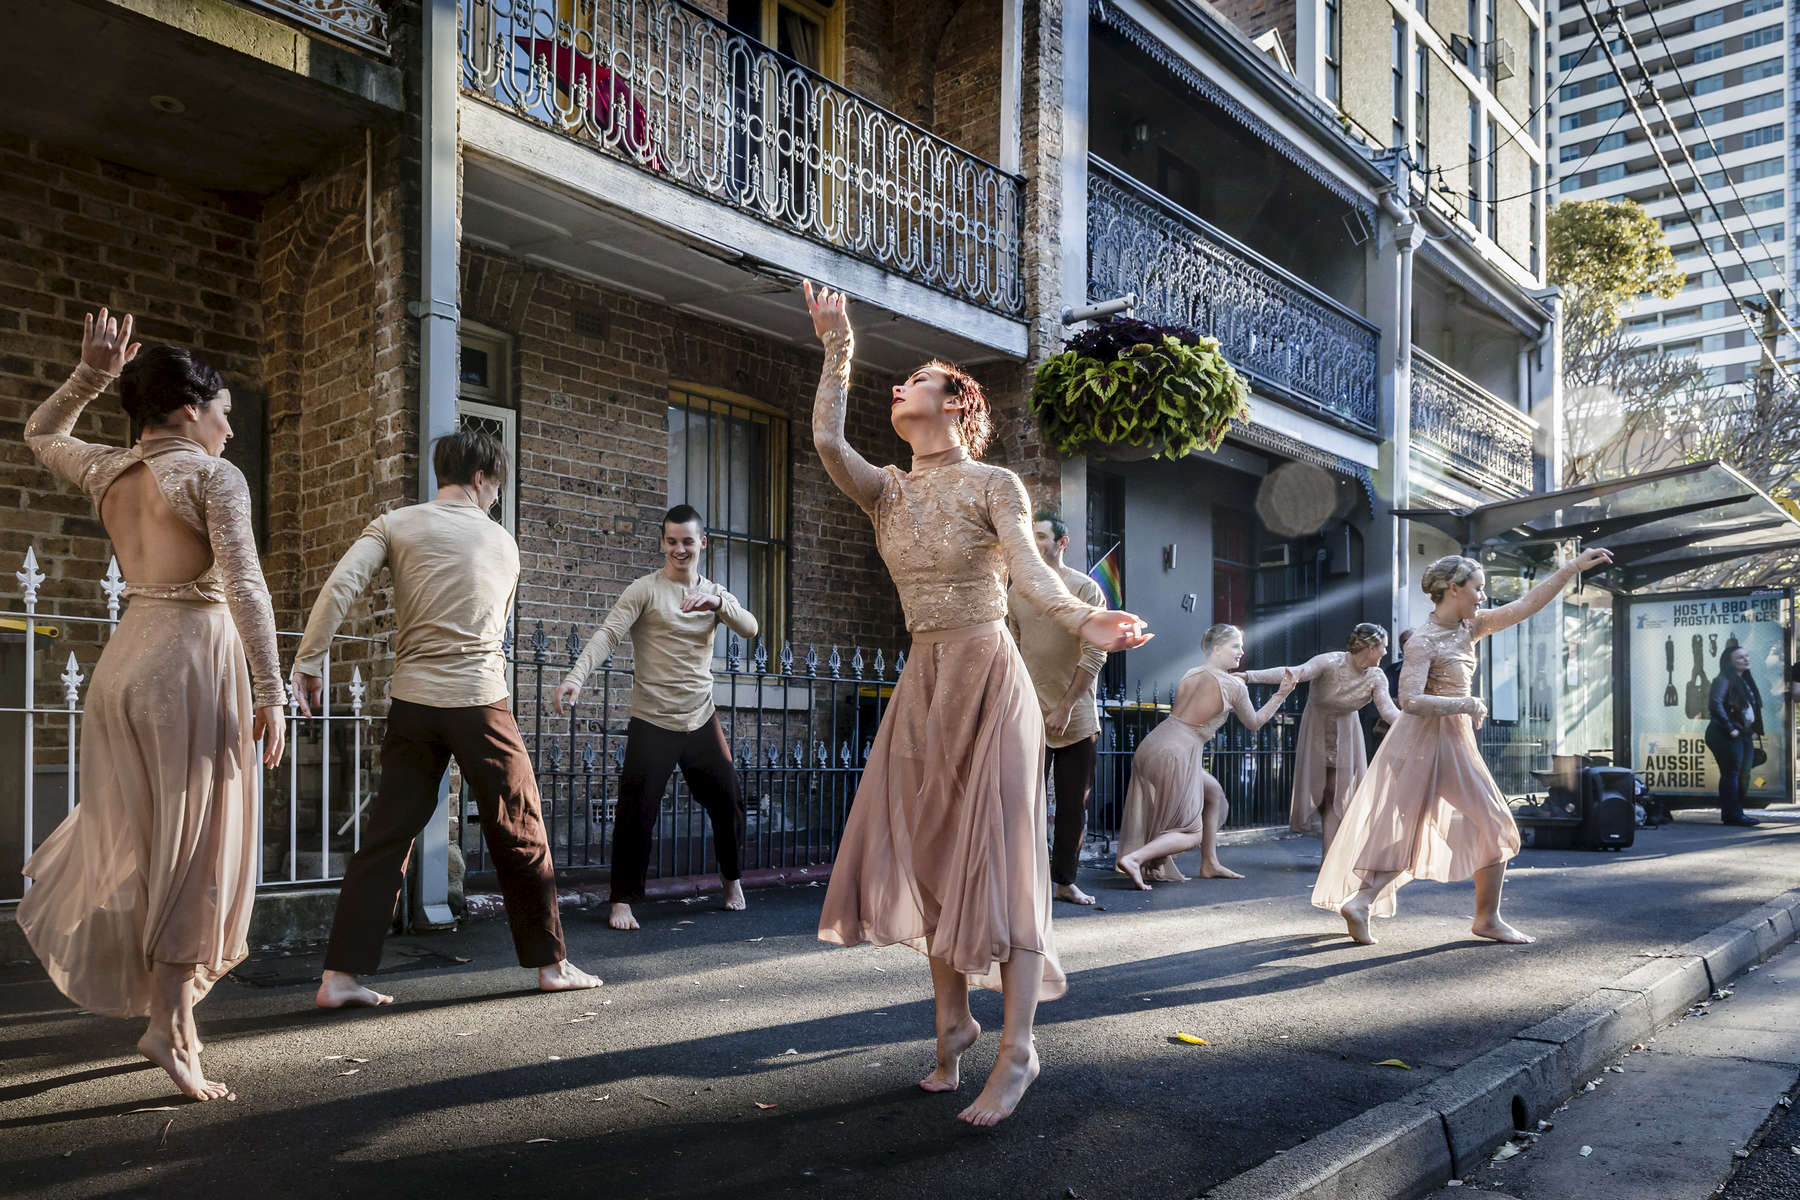 Members of the Primal Dance Company perform on Stanley Street, Darlinghurst, as part of the Sydney Fringe Festival on 03 September, 2016